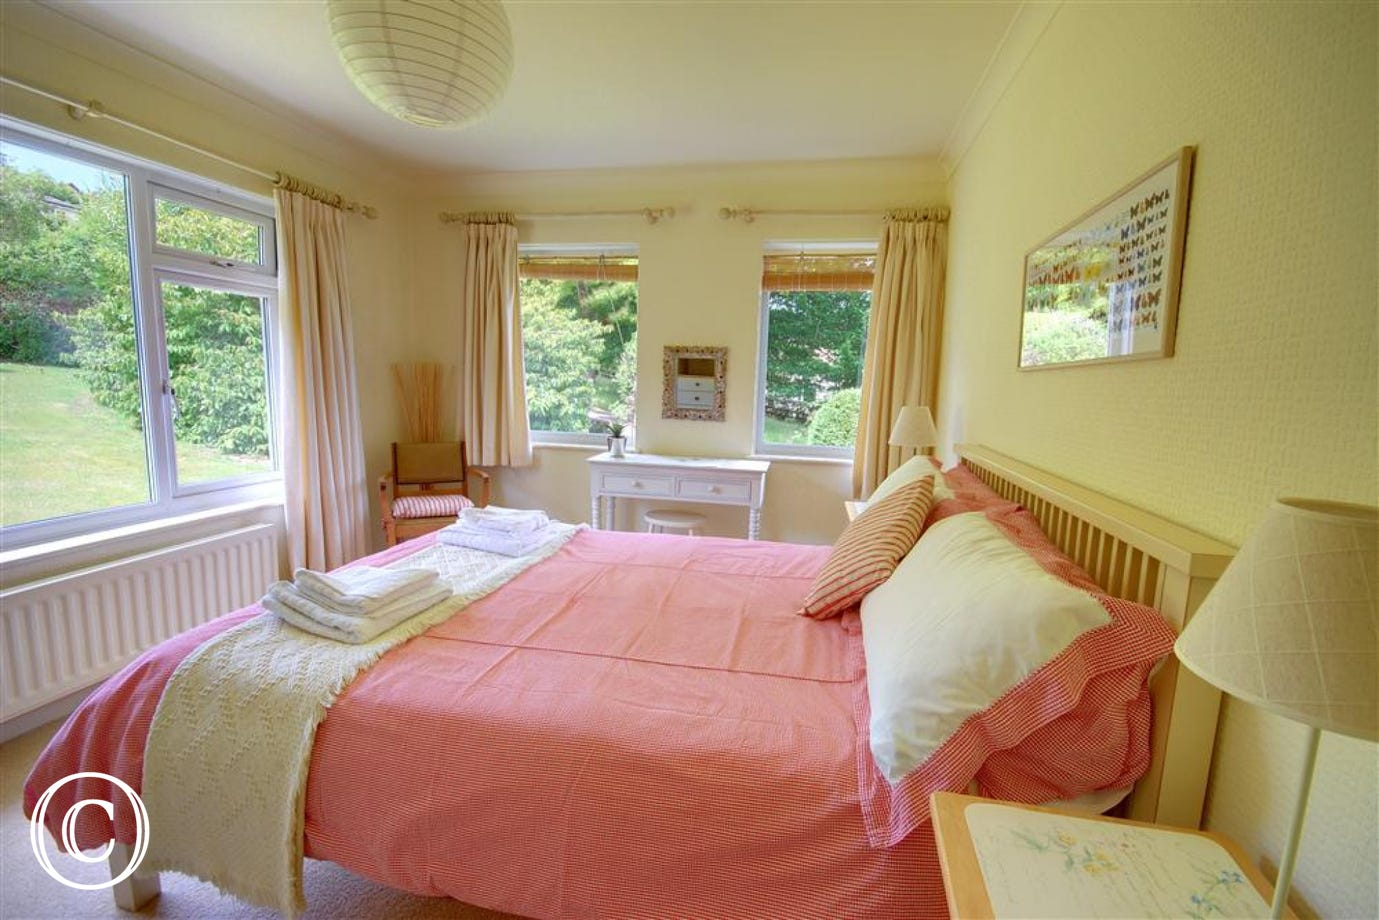 Lots of large picture windows with views over the garden in the Kingsized bedroom